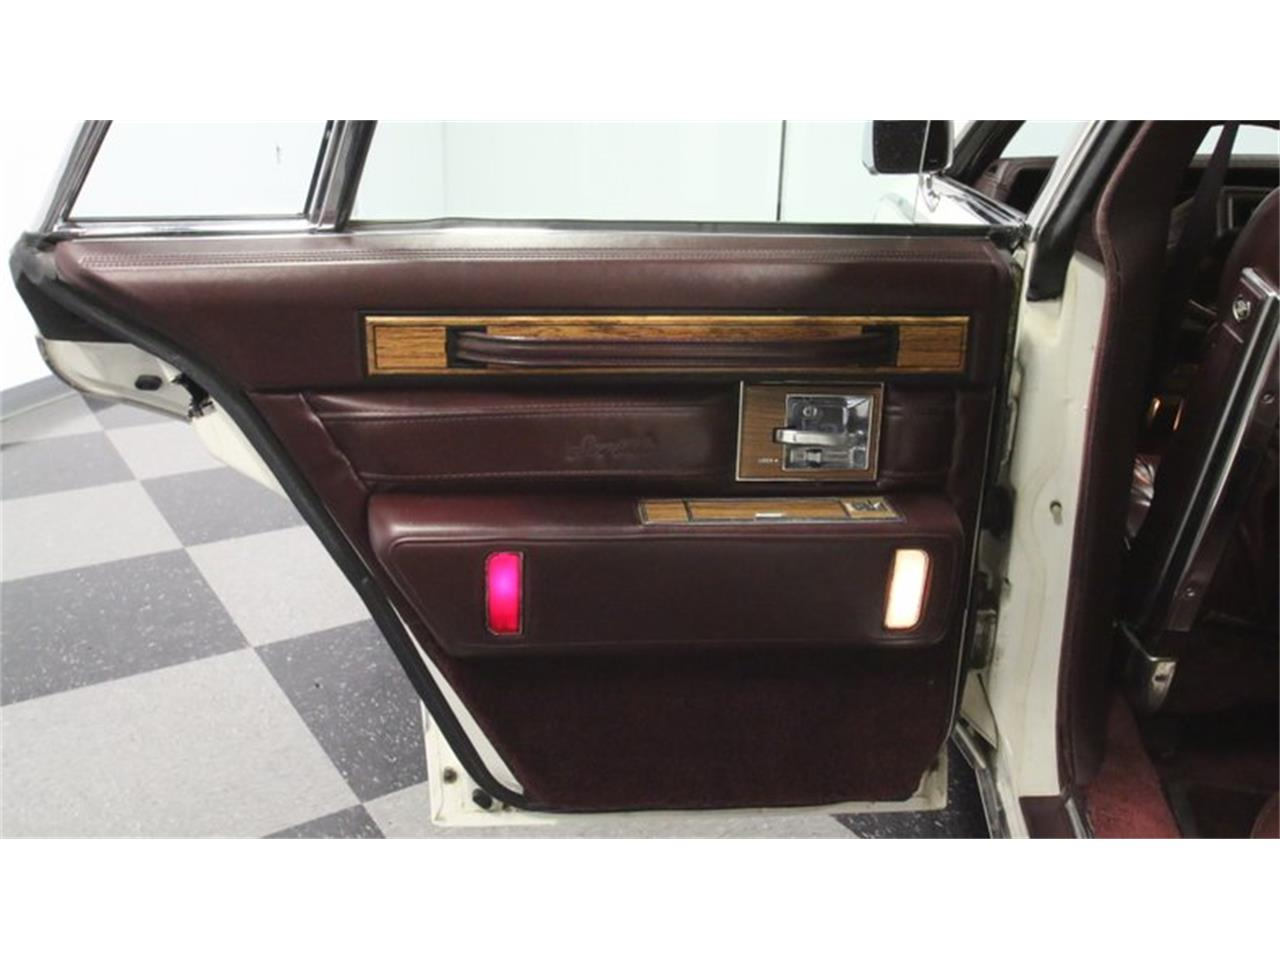 Large Picture of '85 Cadillac Seville located in Lithia Springs Georgia Offered by Streetside Classics - Atlanta - Q3ZM